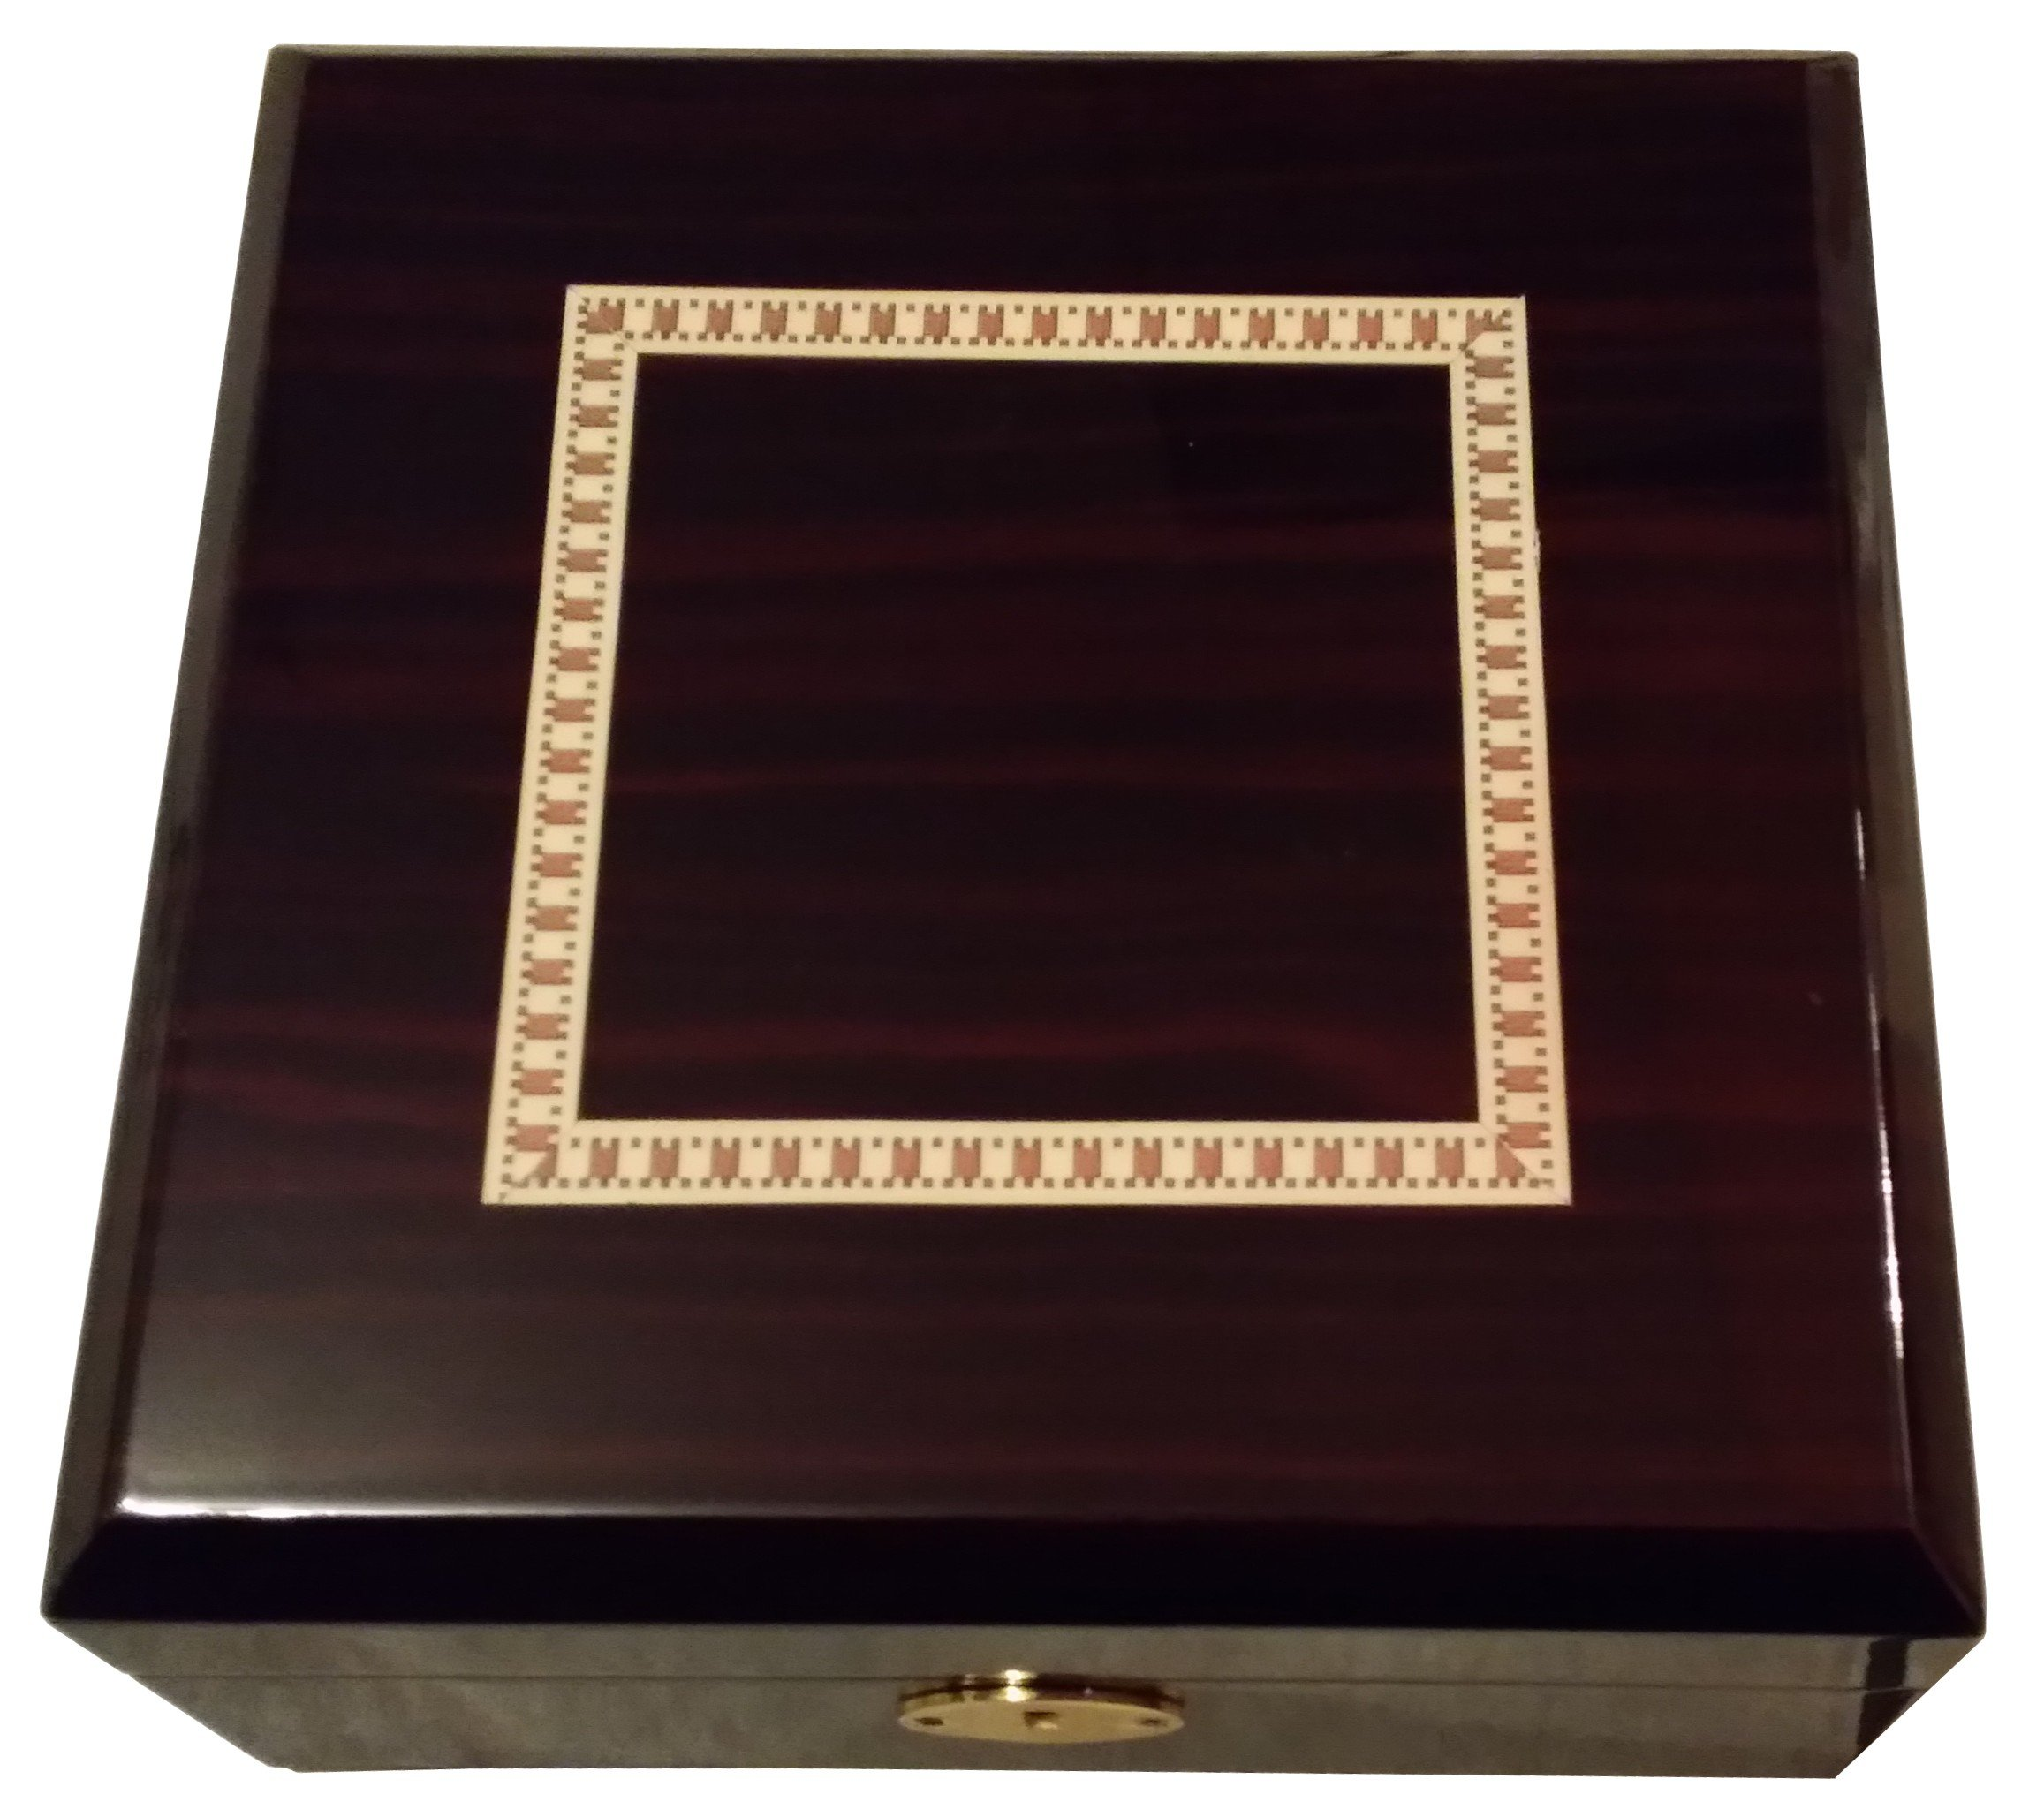 Elegant Cherry Wood Watch Box - Extra Large Compartments for 6 Watches